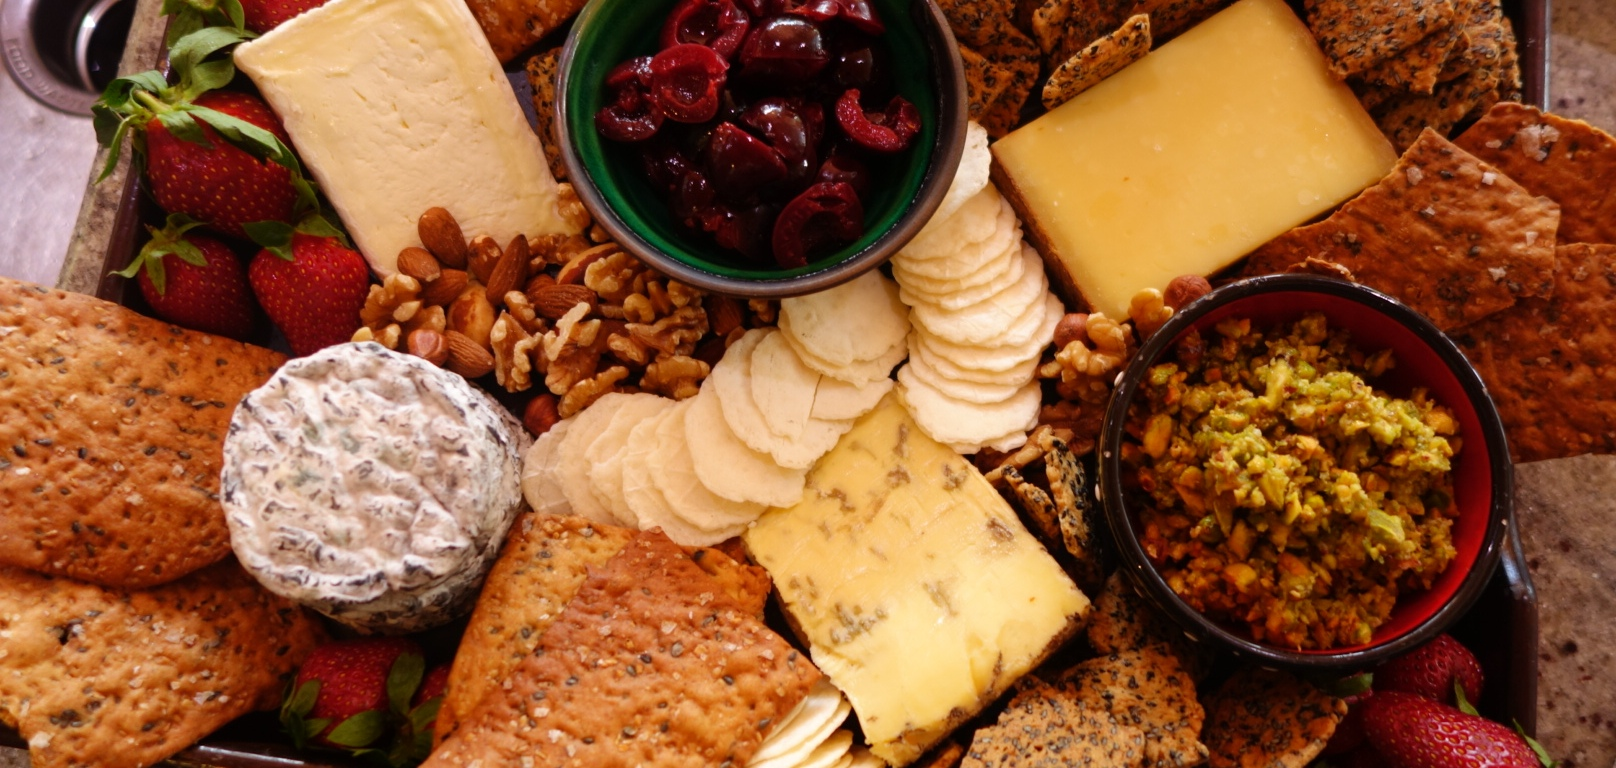 Christmas Cheese Board.5 Tips For A Christmas Cheese Board Life And Cheese